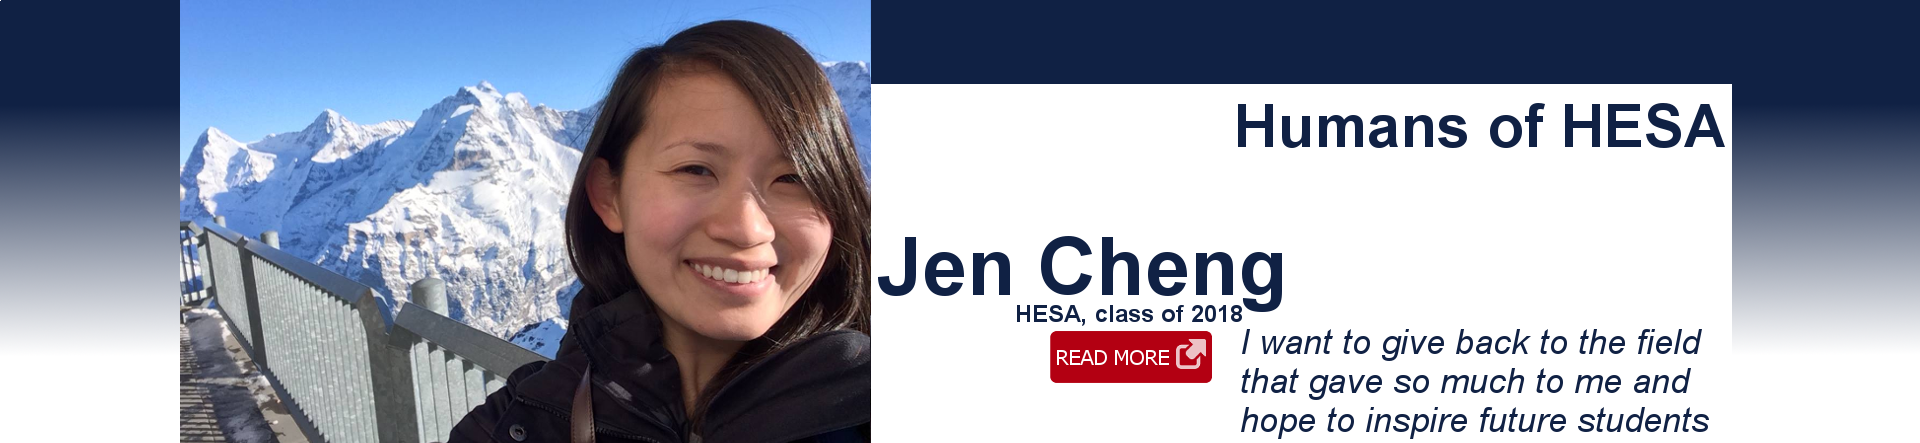 Jen Cheng head schot and quote